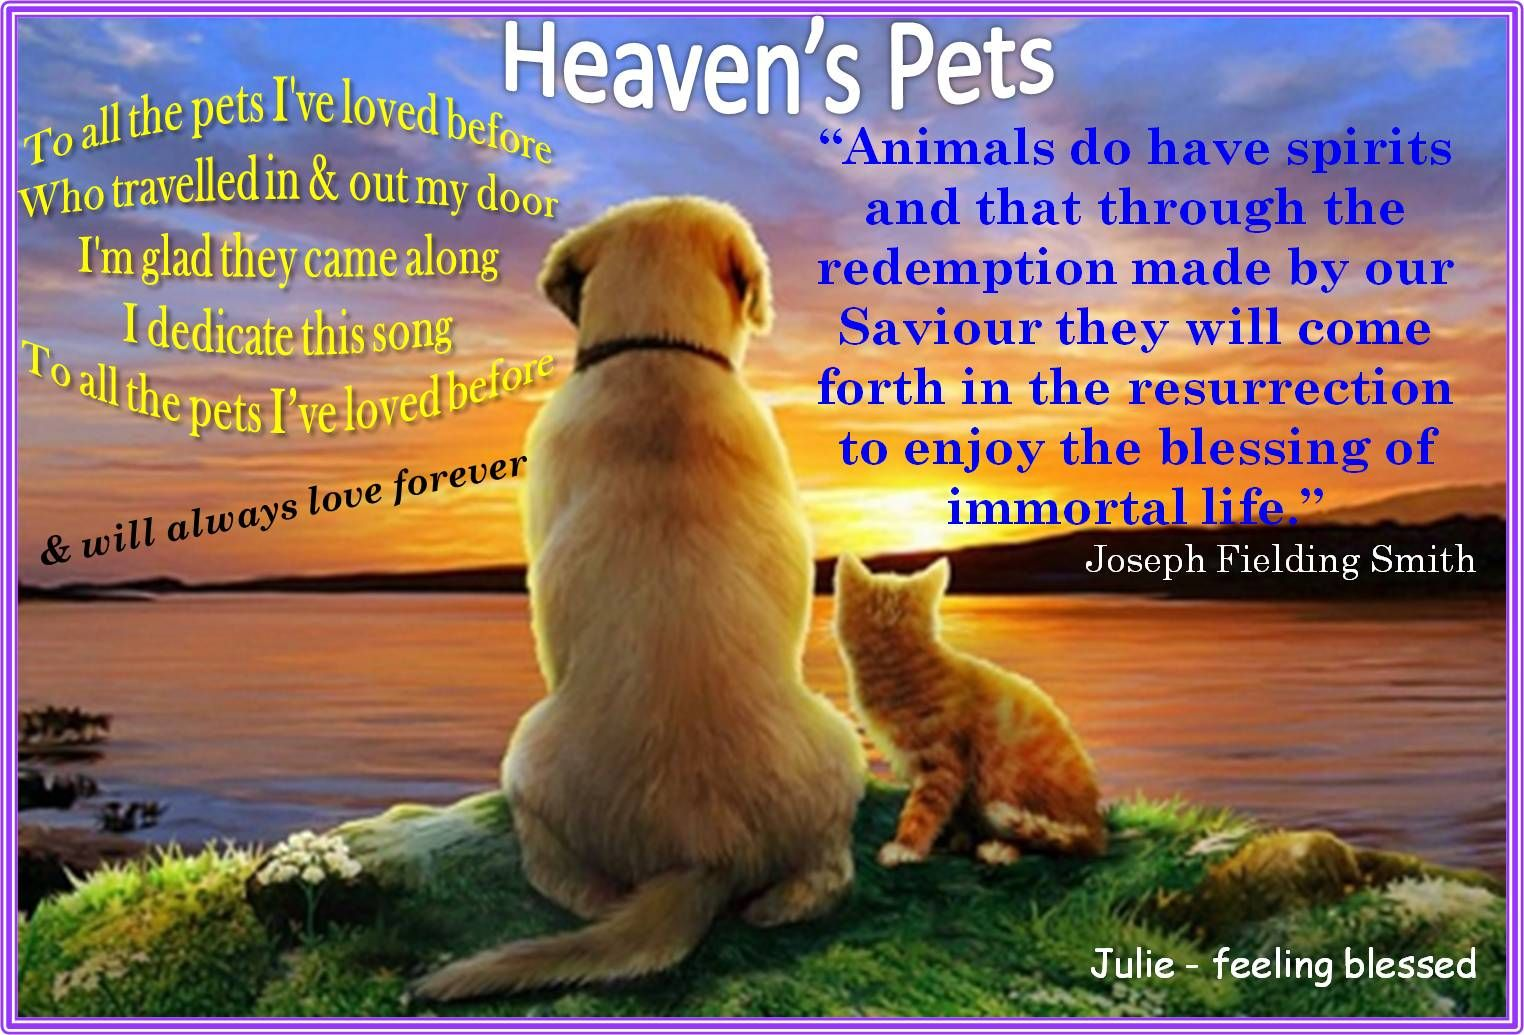 To all my pet's I've loved before (& will forever